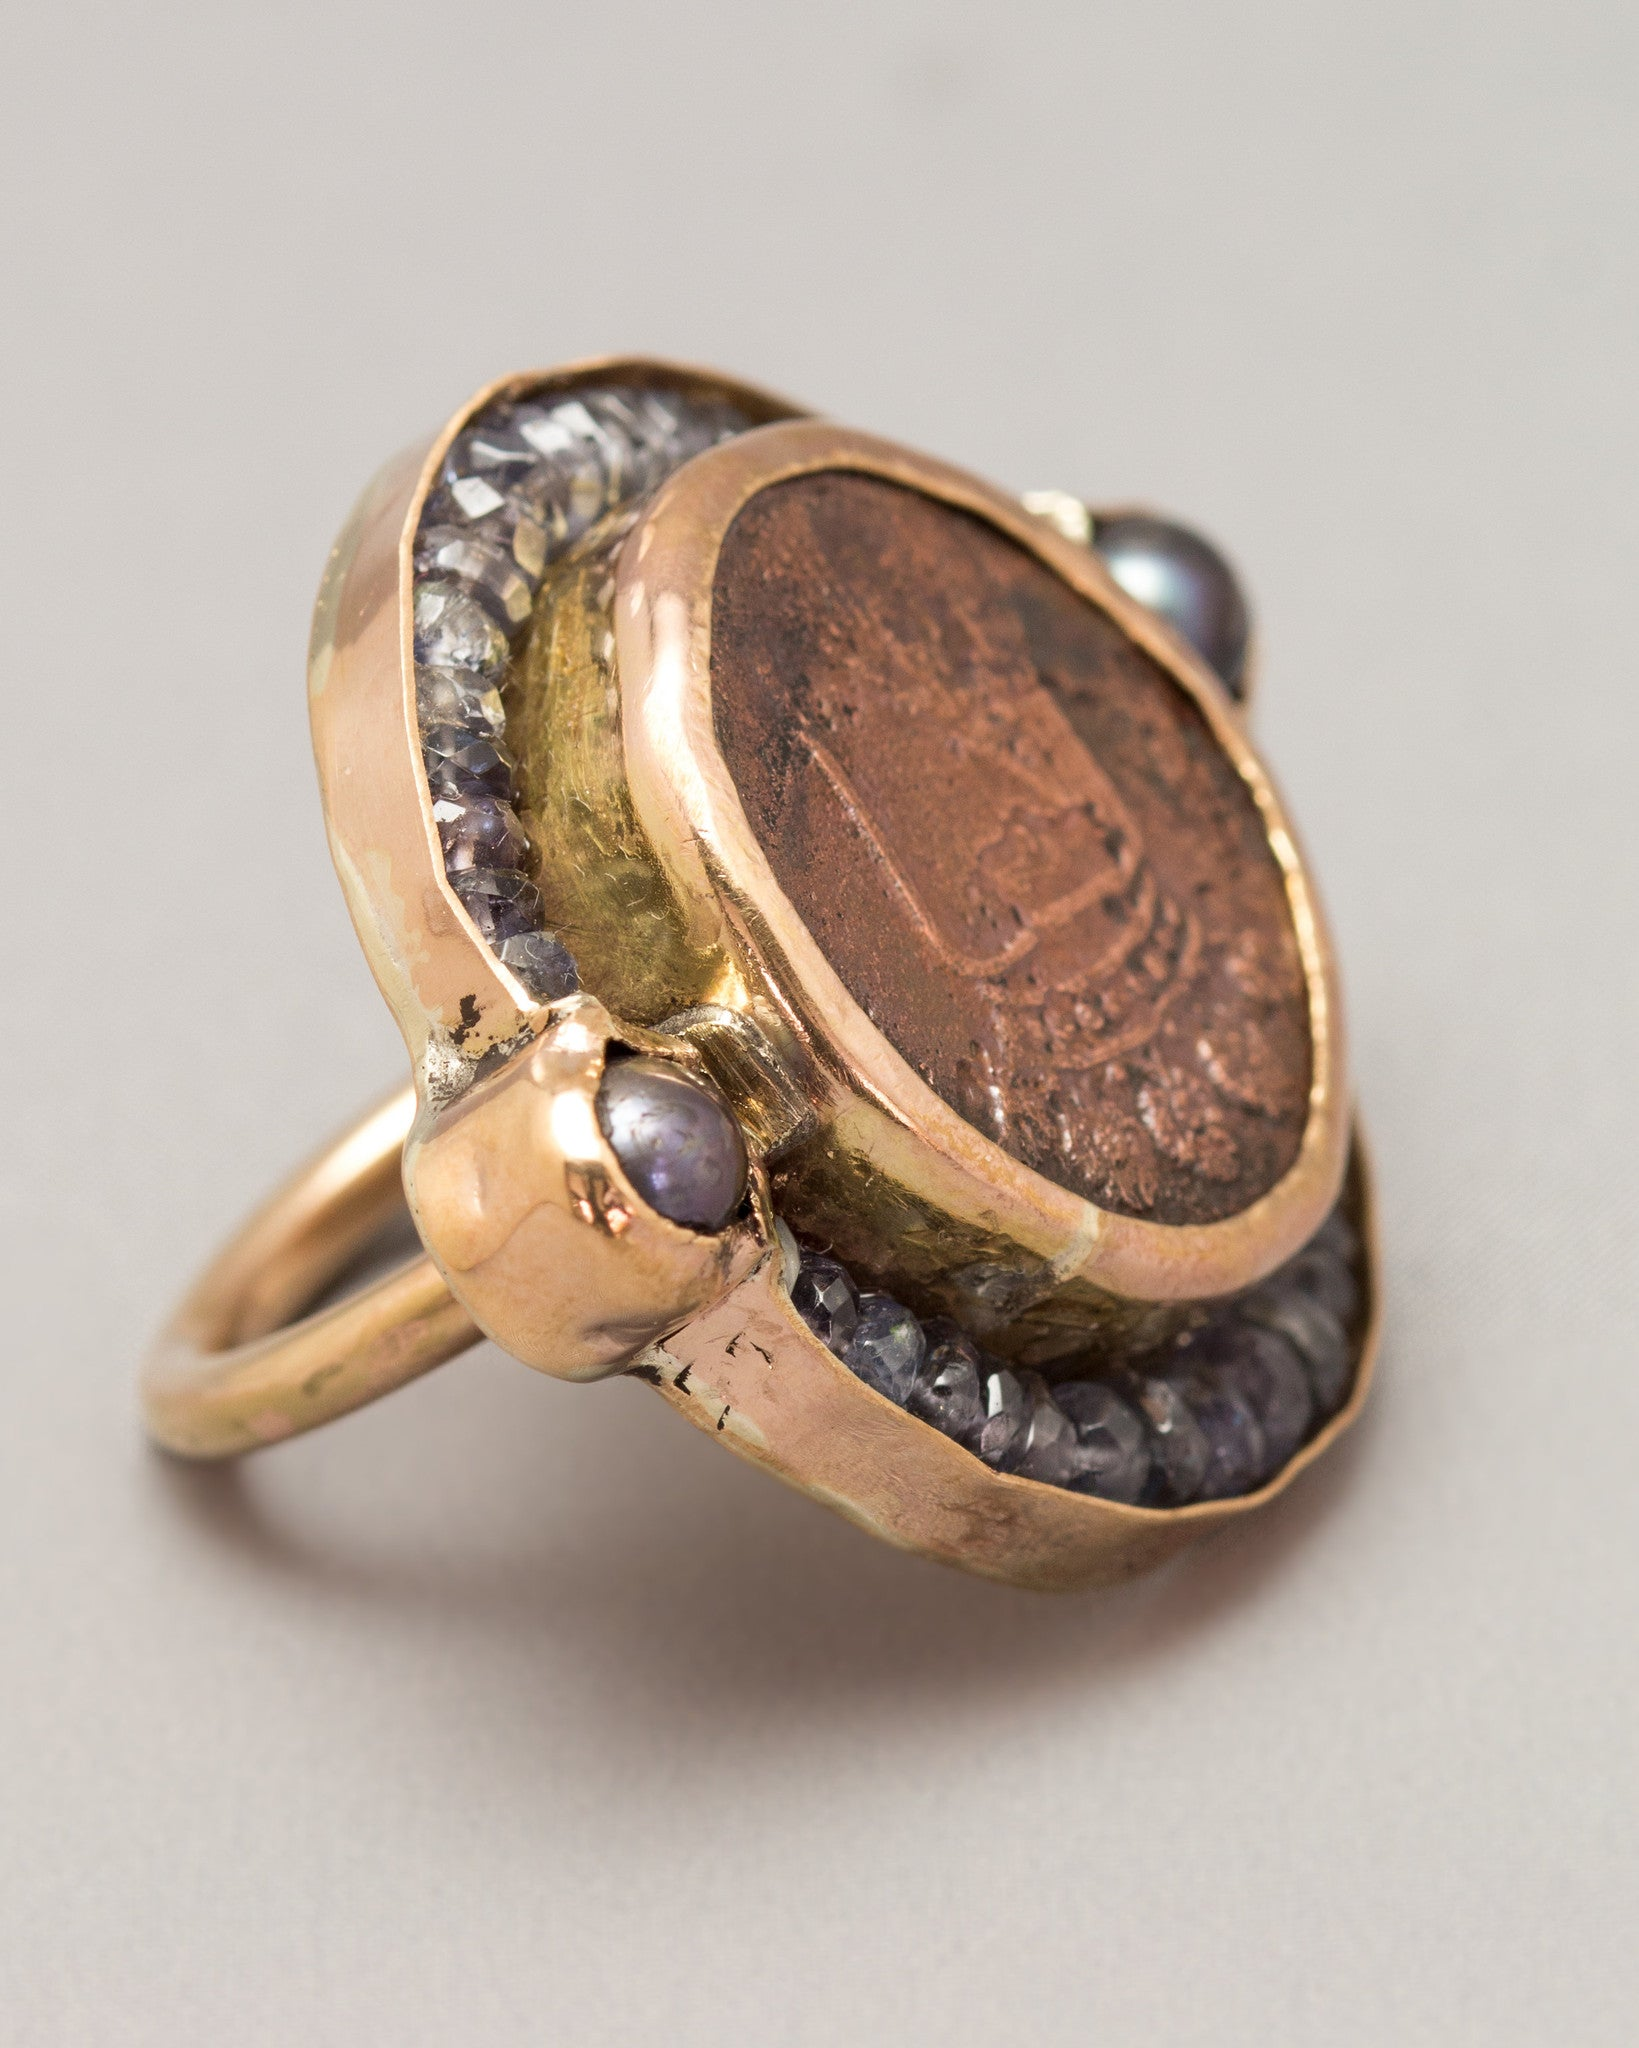 A New York Penny Ring